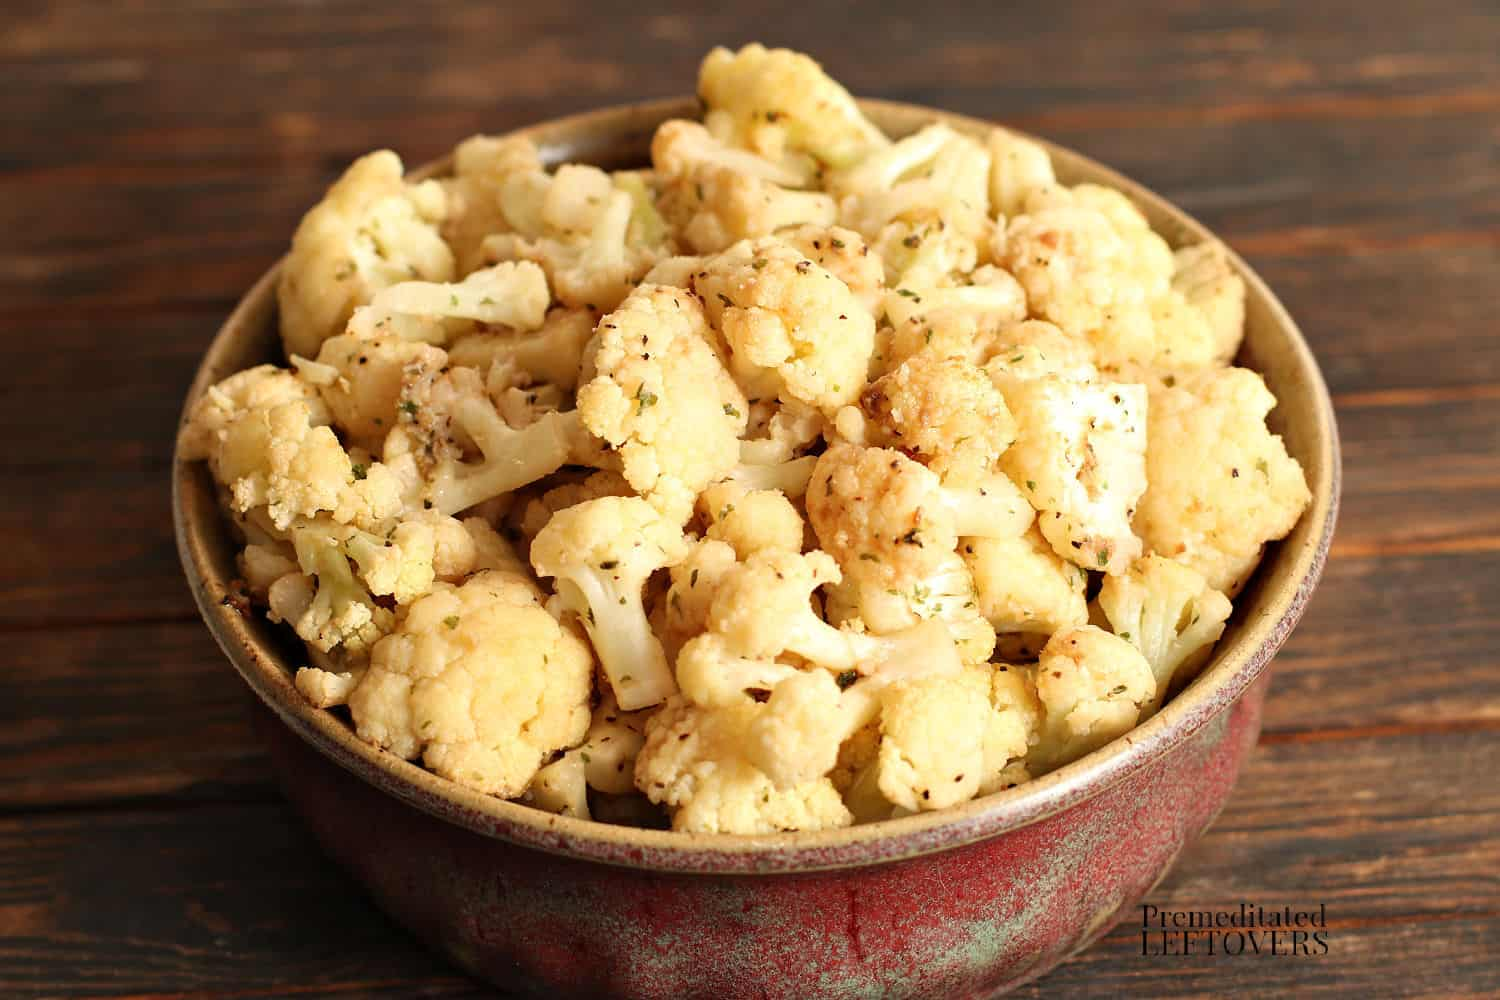 roasted cauliflower in a red bowl